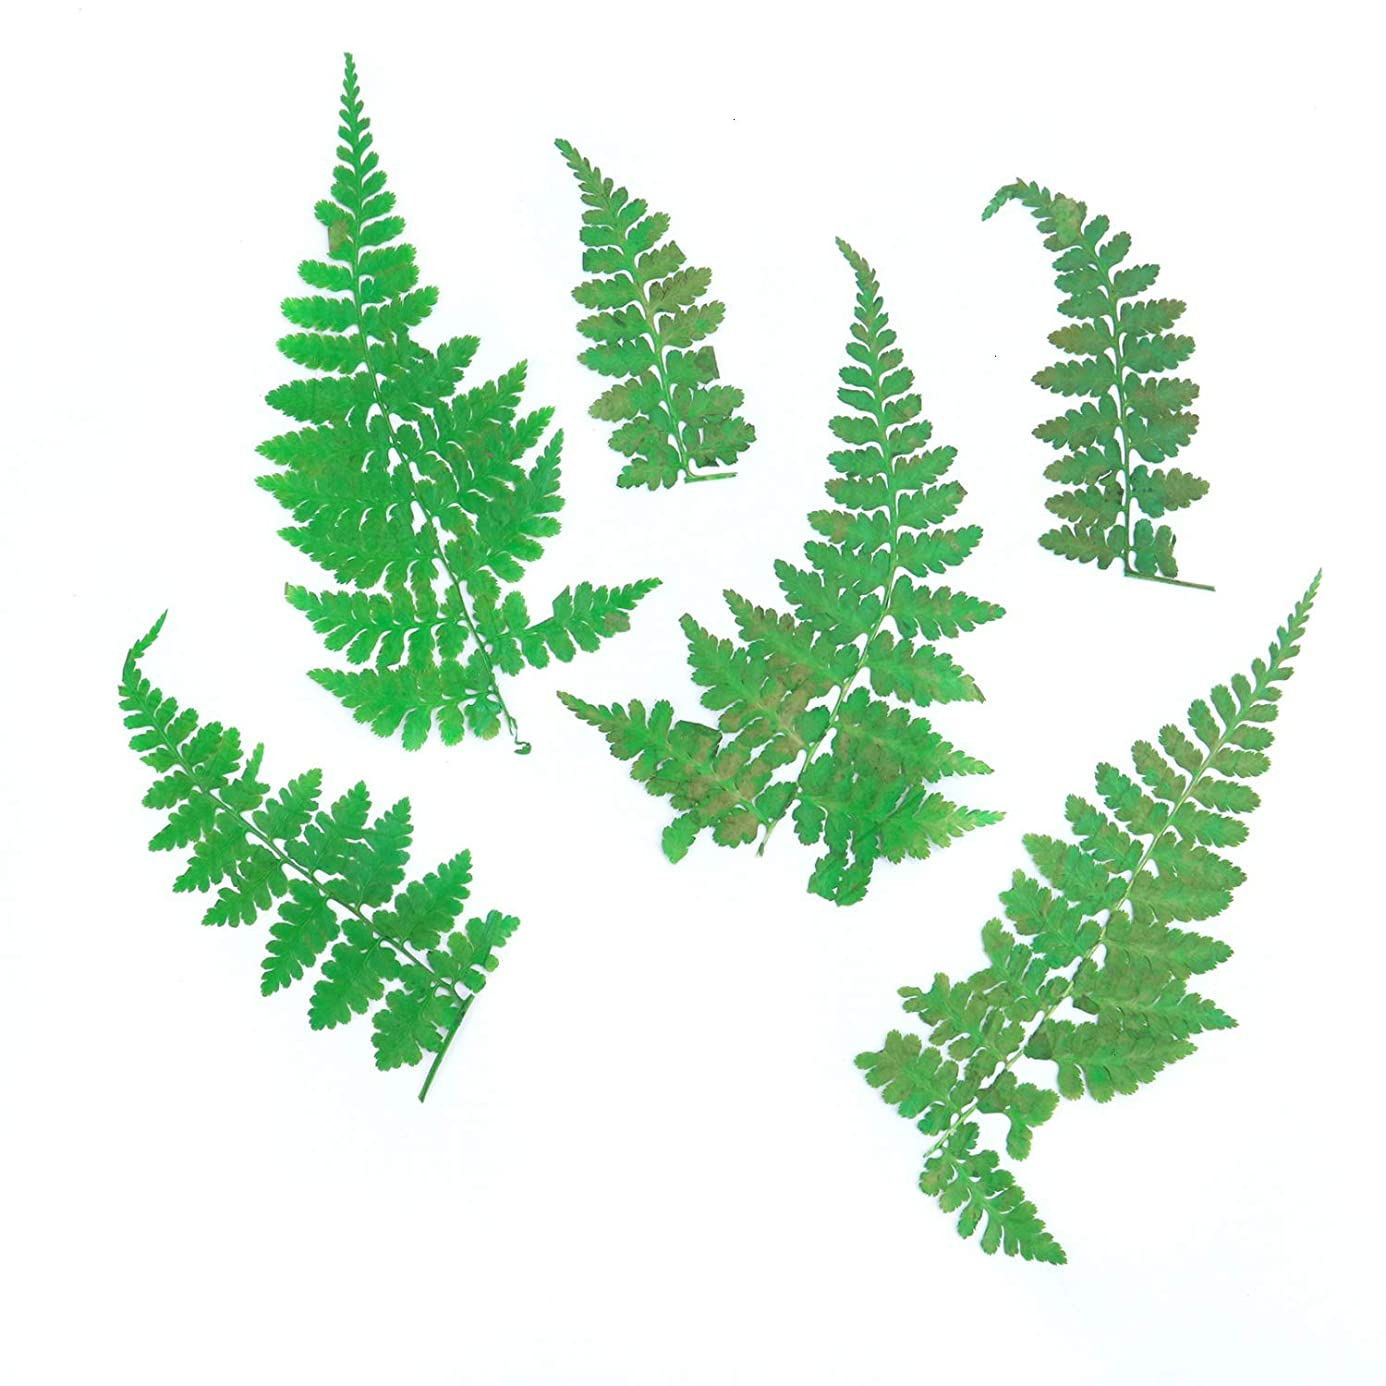 Monrocco Pack of 12Pcs Natural Pressed Ferns Leaves Pressed Real Dry Leaves for DIY Scrapbooking Arts Crafts,Card Making fpt2465917